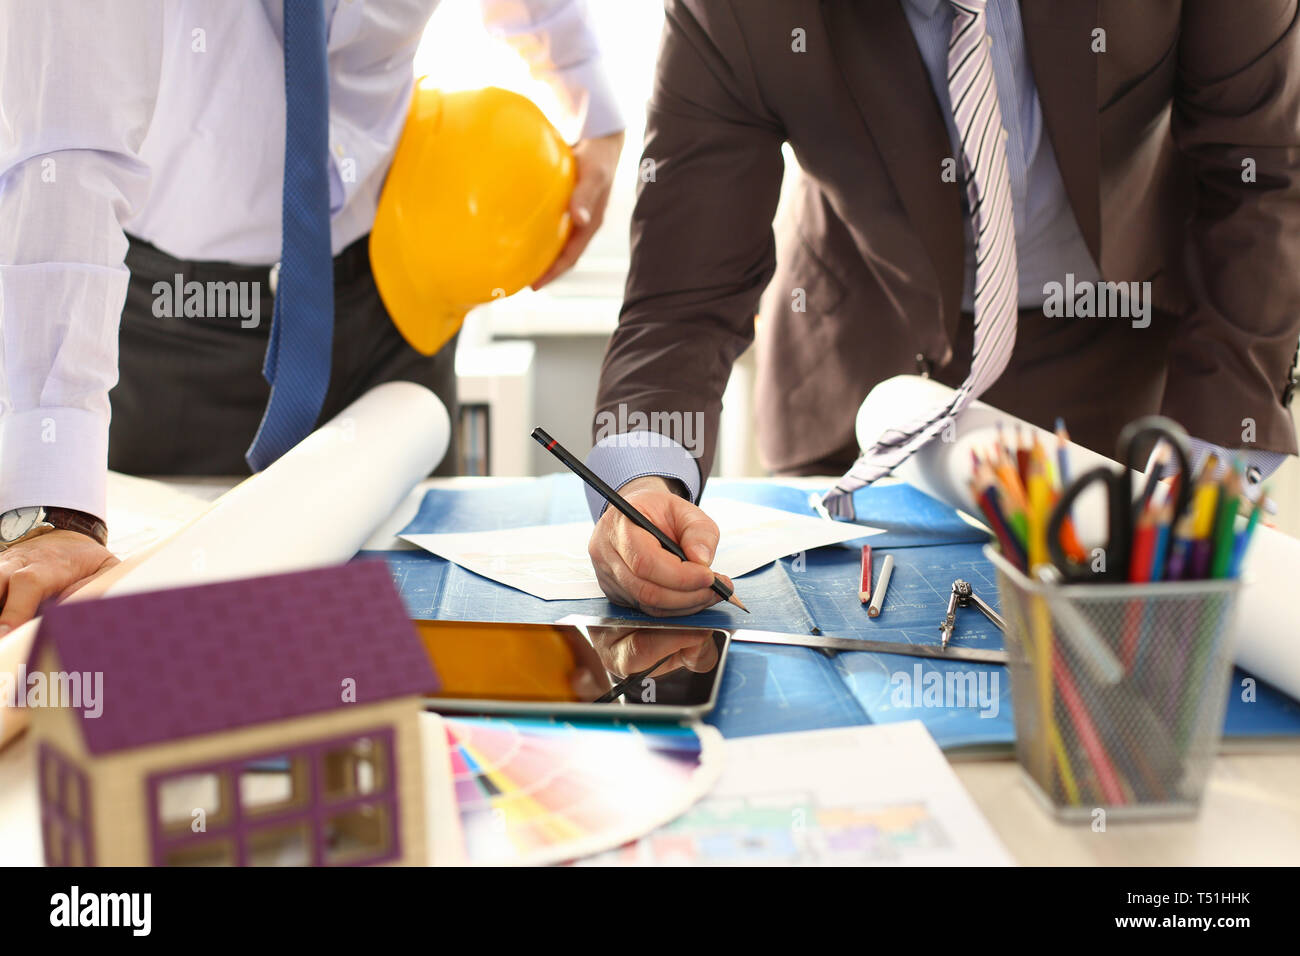 Architect Engineer Team Work on Building Draft - Stock Image